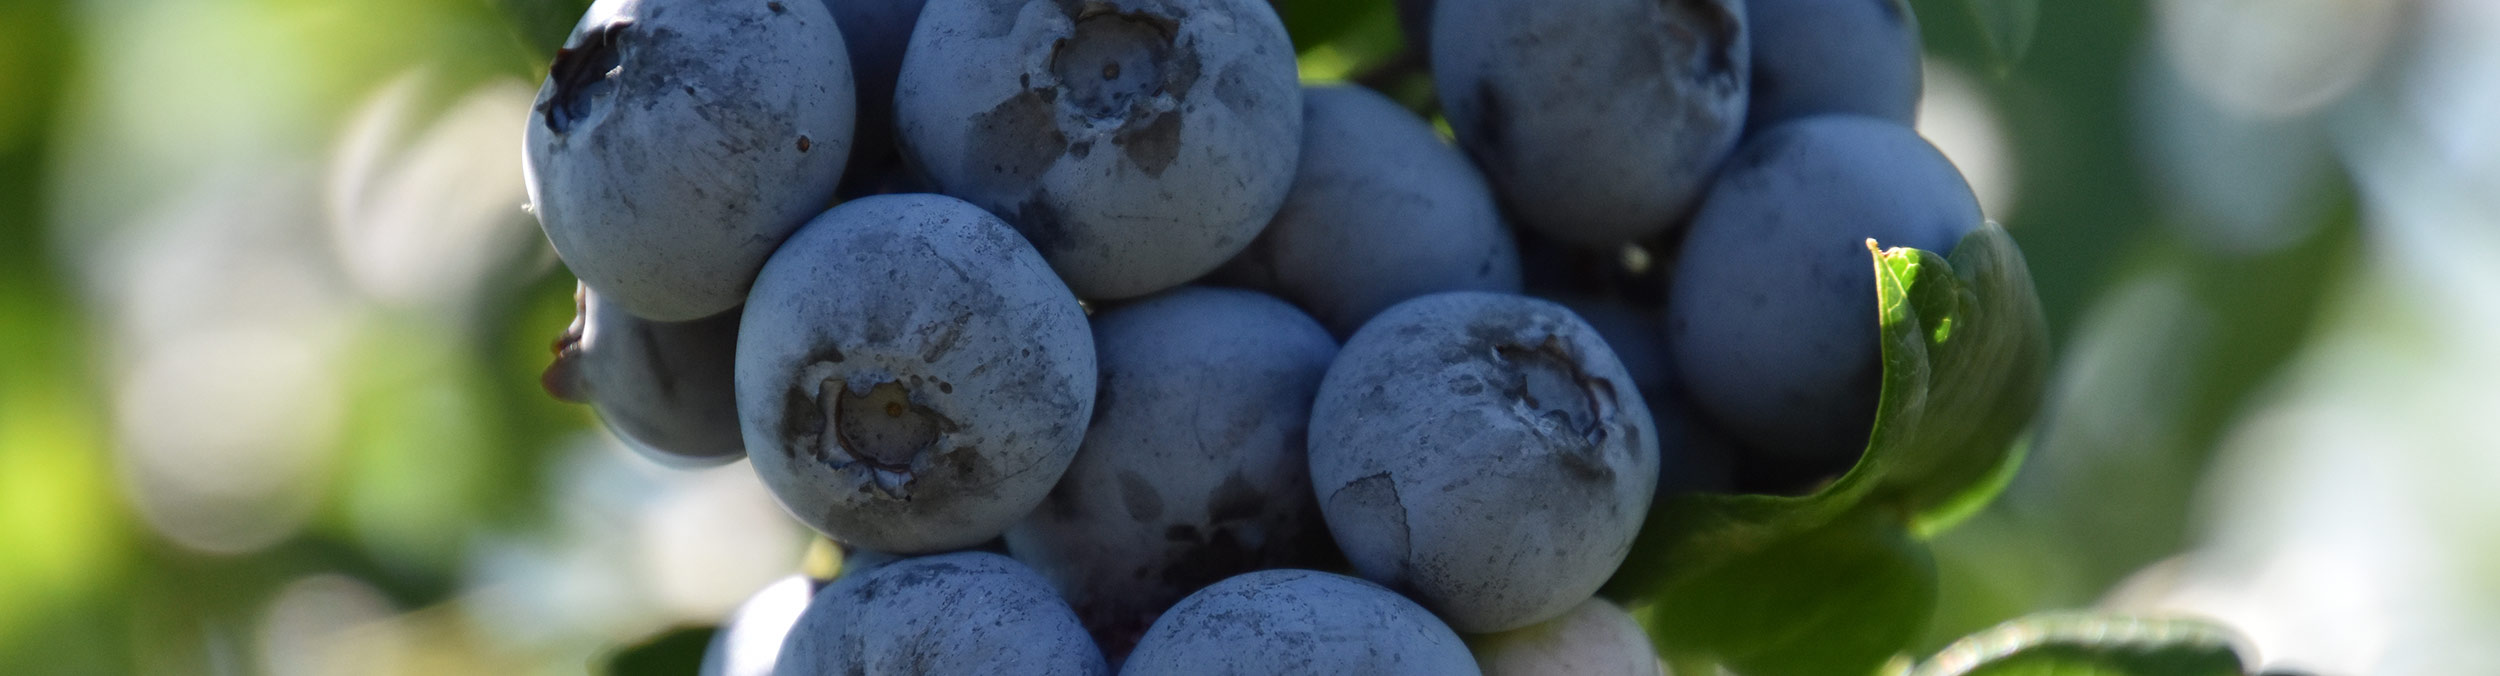 blueberries-2500x676.jpg